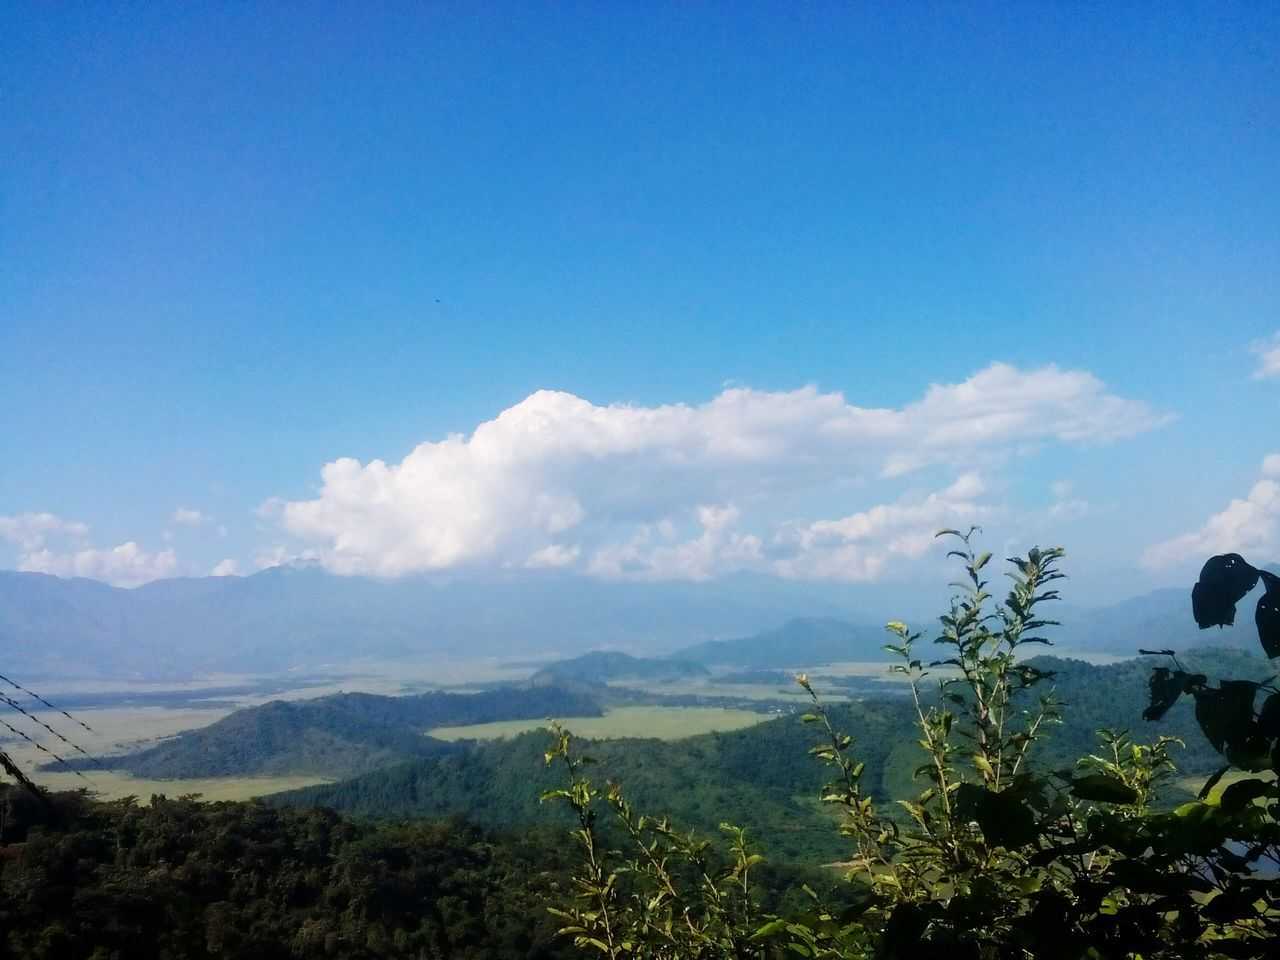 nature, mountain, sky, no people, plant, growth, beauty in nature, blue, landscape, outdoors, scenics, day, blue sky